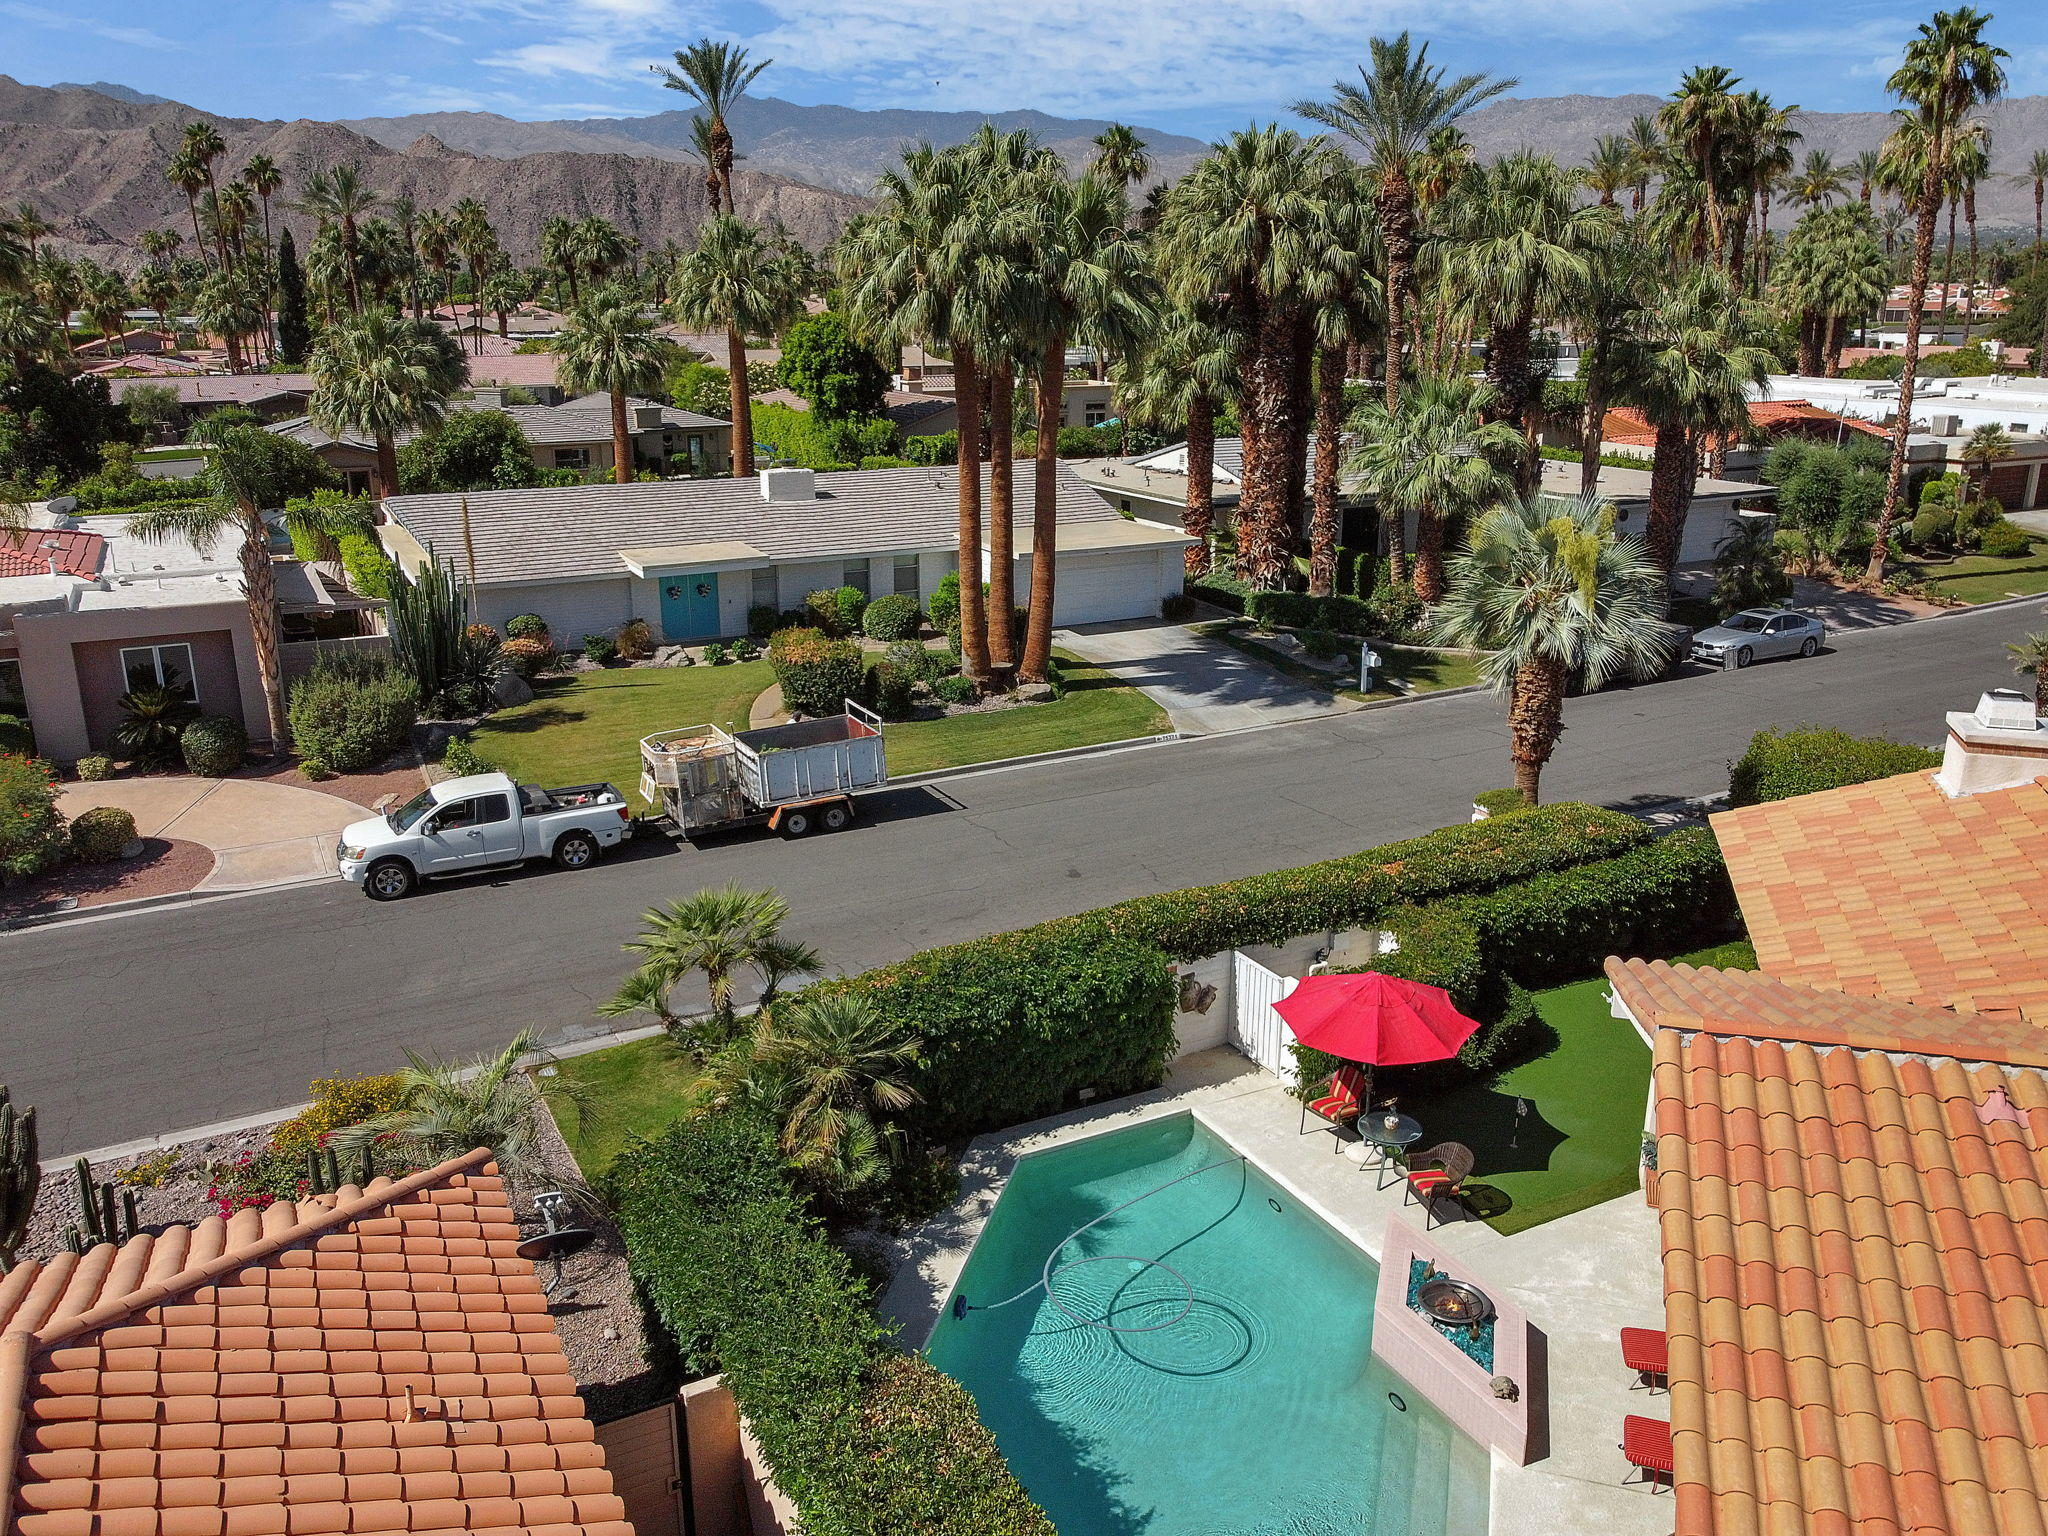 This beautiful custom built home has everything you can want in Indian Wells including a southern mountain view. This 3 bedroom and 3 bath home also includes a bonus room attached to the master.  The open floor plan flows from the great room to the kitchen to the beautiful patio and includes large windows providing the views of palm trees and mountains.  Once on the patio, enjoy the pool and spa, or the outdoor dining room with TV, or play a few holes on the putting green.  The home has been built on the lot specifically to take full advantage of the beautiful southern views.  There is a 3 car garage, one with an oversized garage door to allow for a larger car or over sized toys.  The master suite has 3 closets that are custom built, a marble fireplace, and you will wake up to scenic views every day. As an IW resident, you have privileges at the famous Indian Wells Tennis Garden and enjoy 20% off on all Indian Wells 5-star resorts, dining, and golf with your Indian Wells residence card.